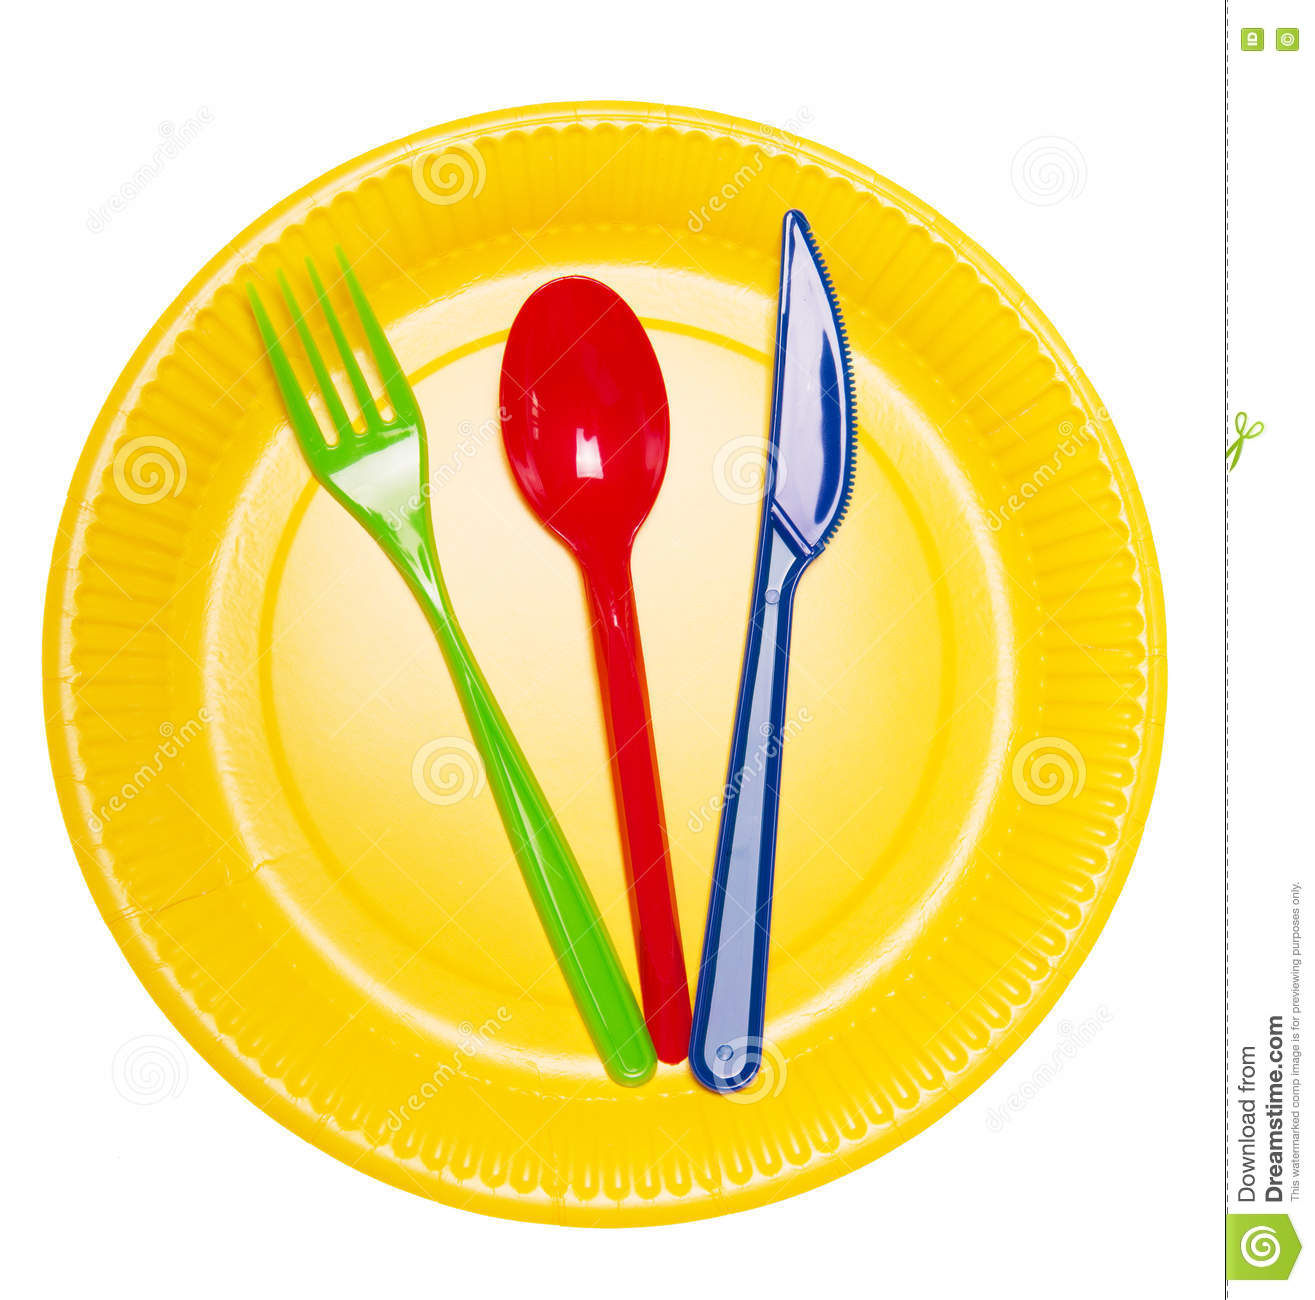 Tischgedeck Clipart Set Bright Disposable Dishes Plate Spoon Fork And Knife